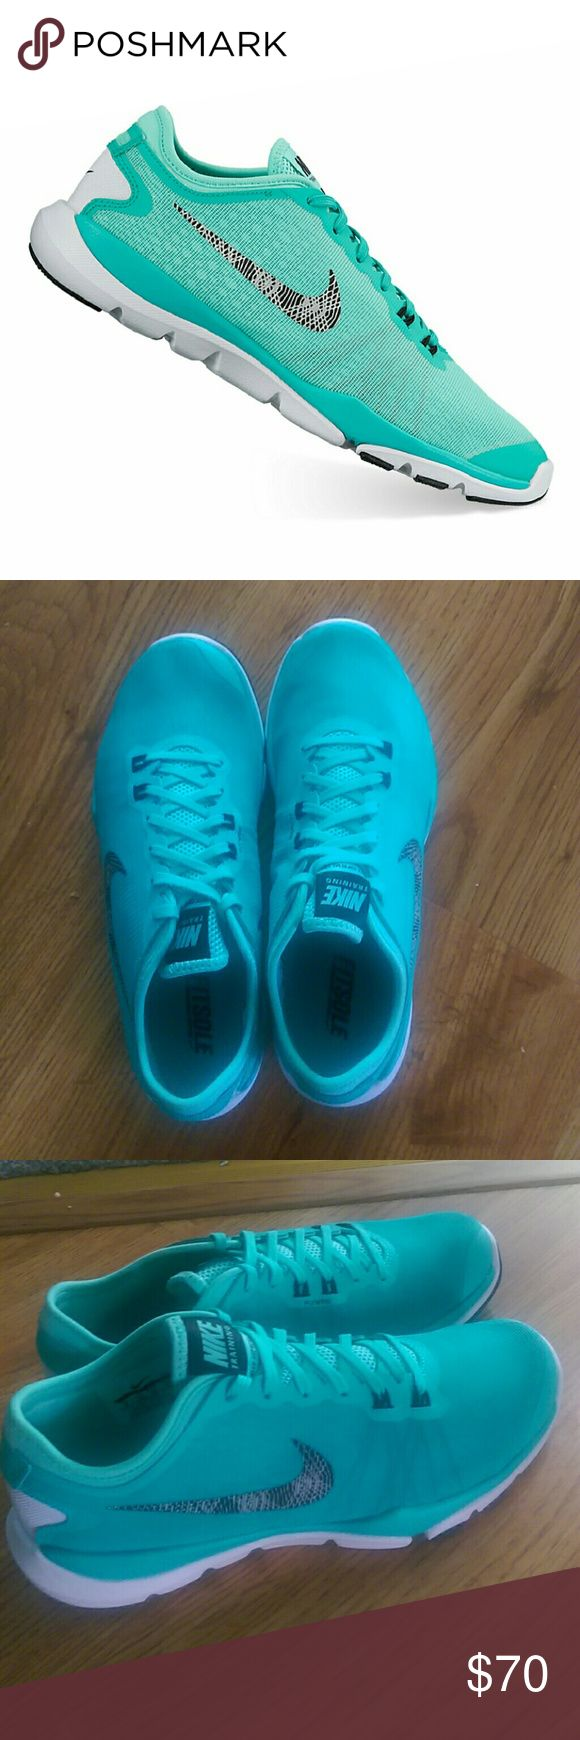 Nike flex cross training shoes Nike flex supreme 4.    Brand new. Lightweight mesh upper delivers breathable flexibility. No trades. Nike Shoes Athletic Shoes